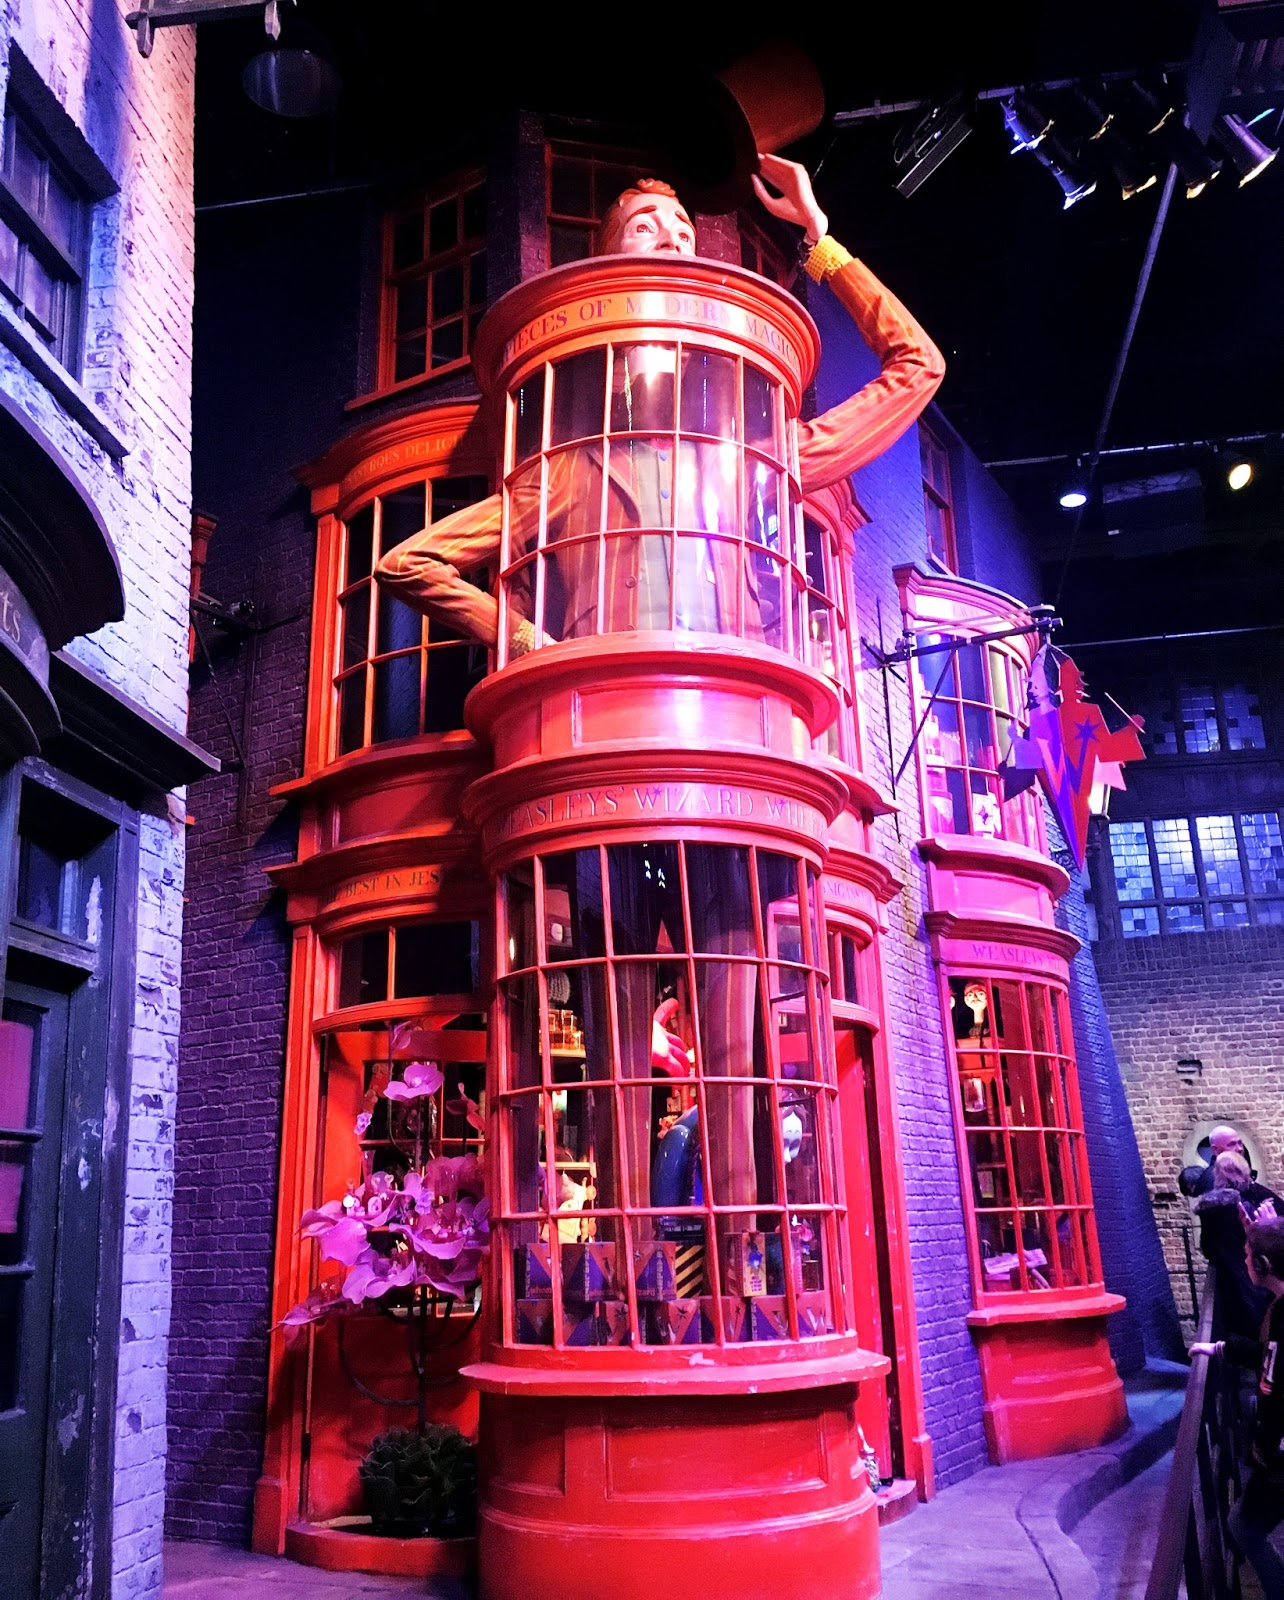 warner bros studio tour the making of harry potter in london